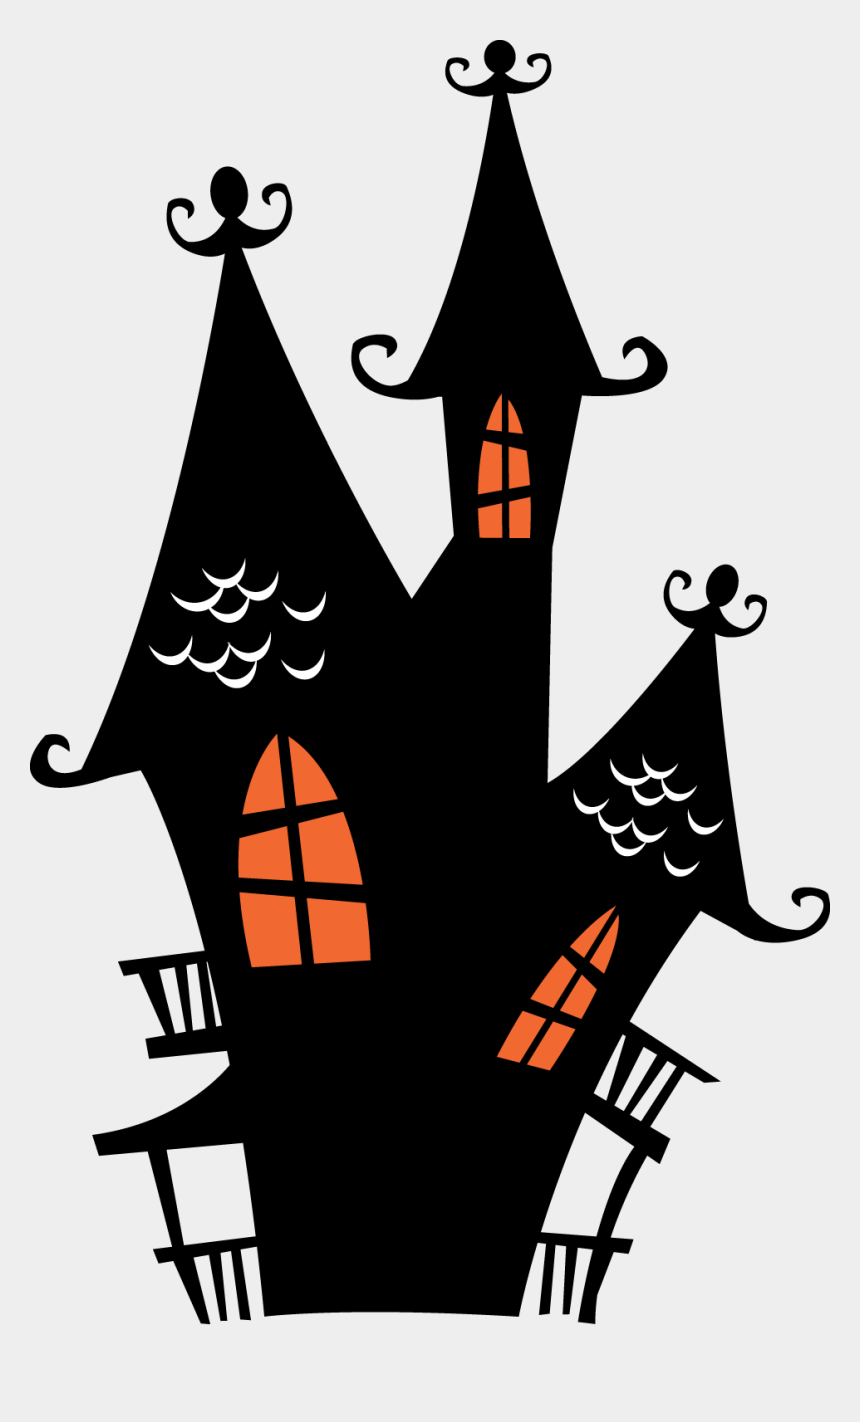 mansion clipart, Cartoons - Halloween Spooky House Clip Art - Spooky House Haunted House Clipart